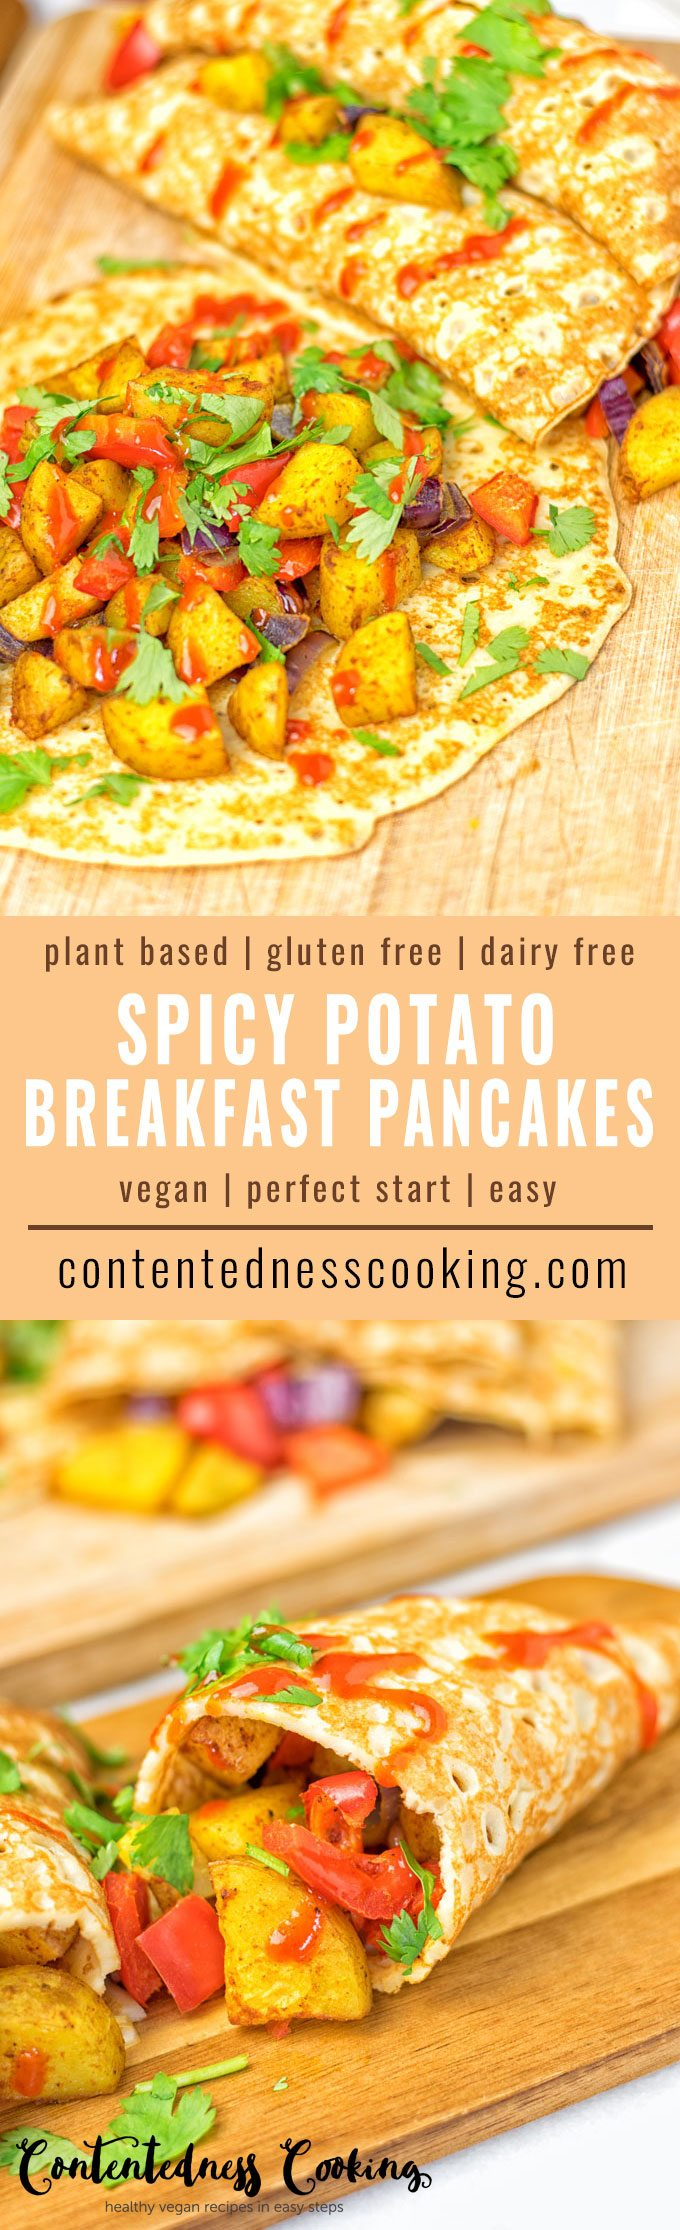 Spicy Potato Breakfast Pancakes | #vegan #glutenfree #contentednesscooking #plantbased #dairyfree